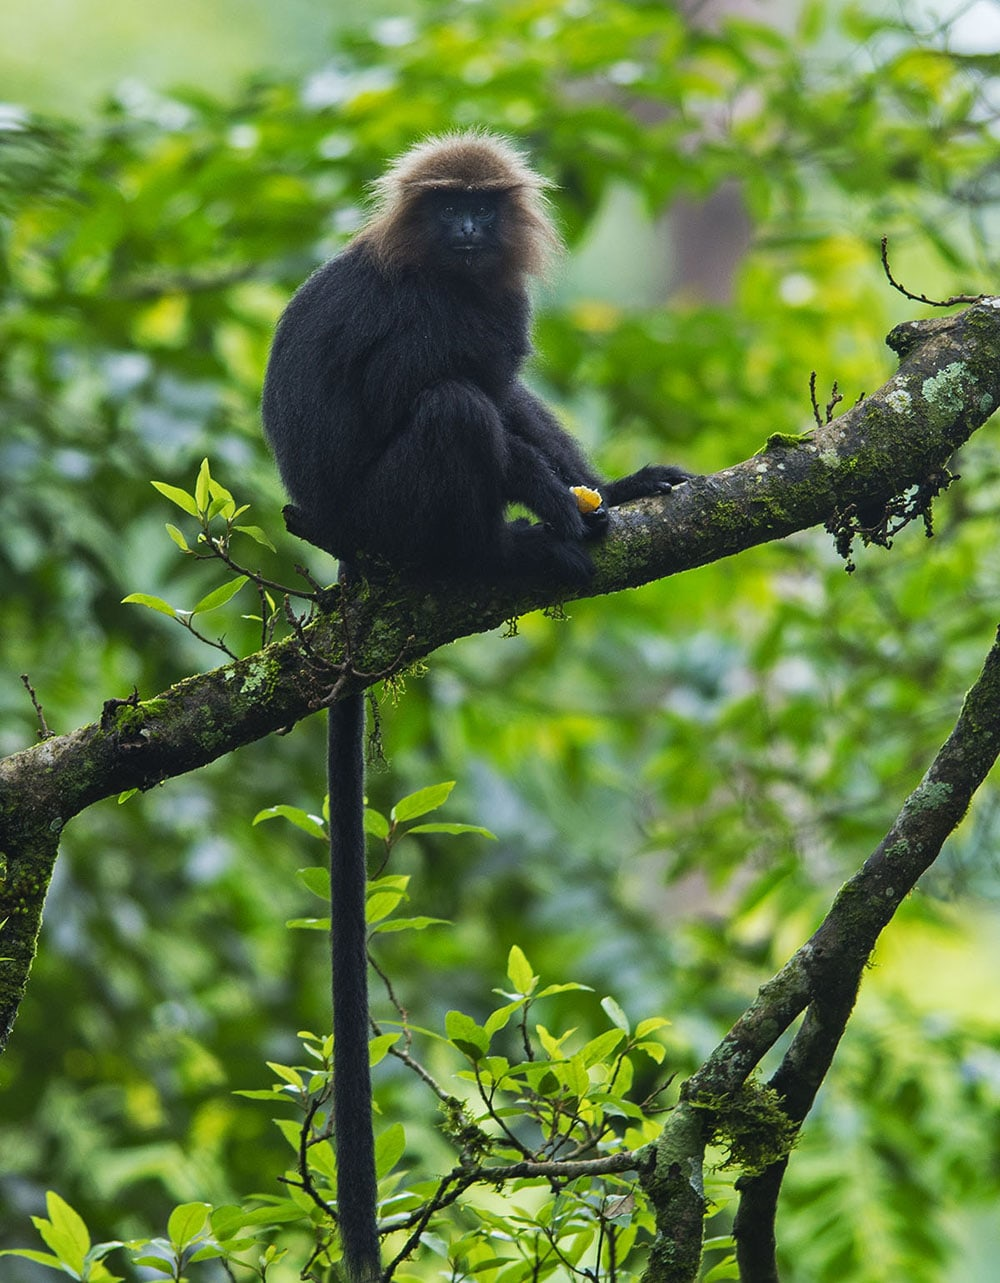 The Nilgiri langur's long tail is what distinguishes it from its more-celebrated, similarly-coloured cousin – the lion-tailed macaque. Photo: Dhritiman Mukherjee